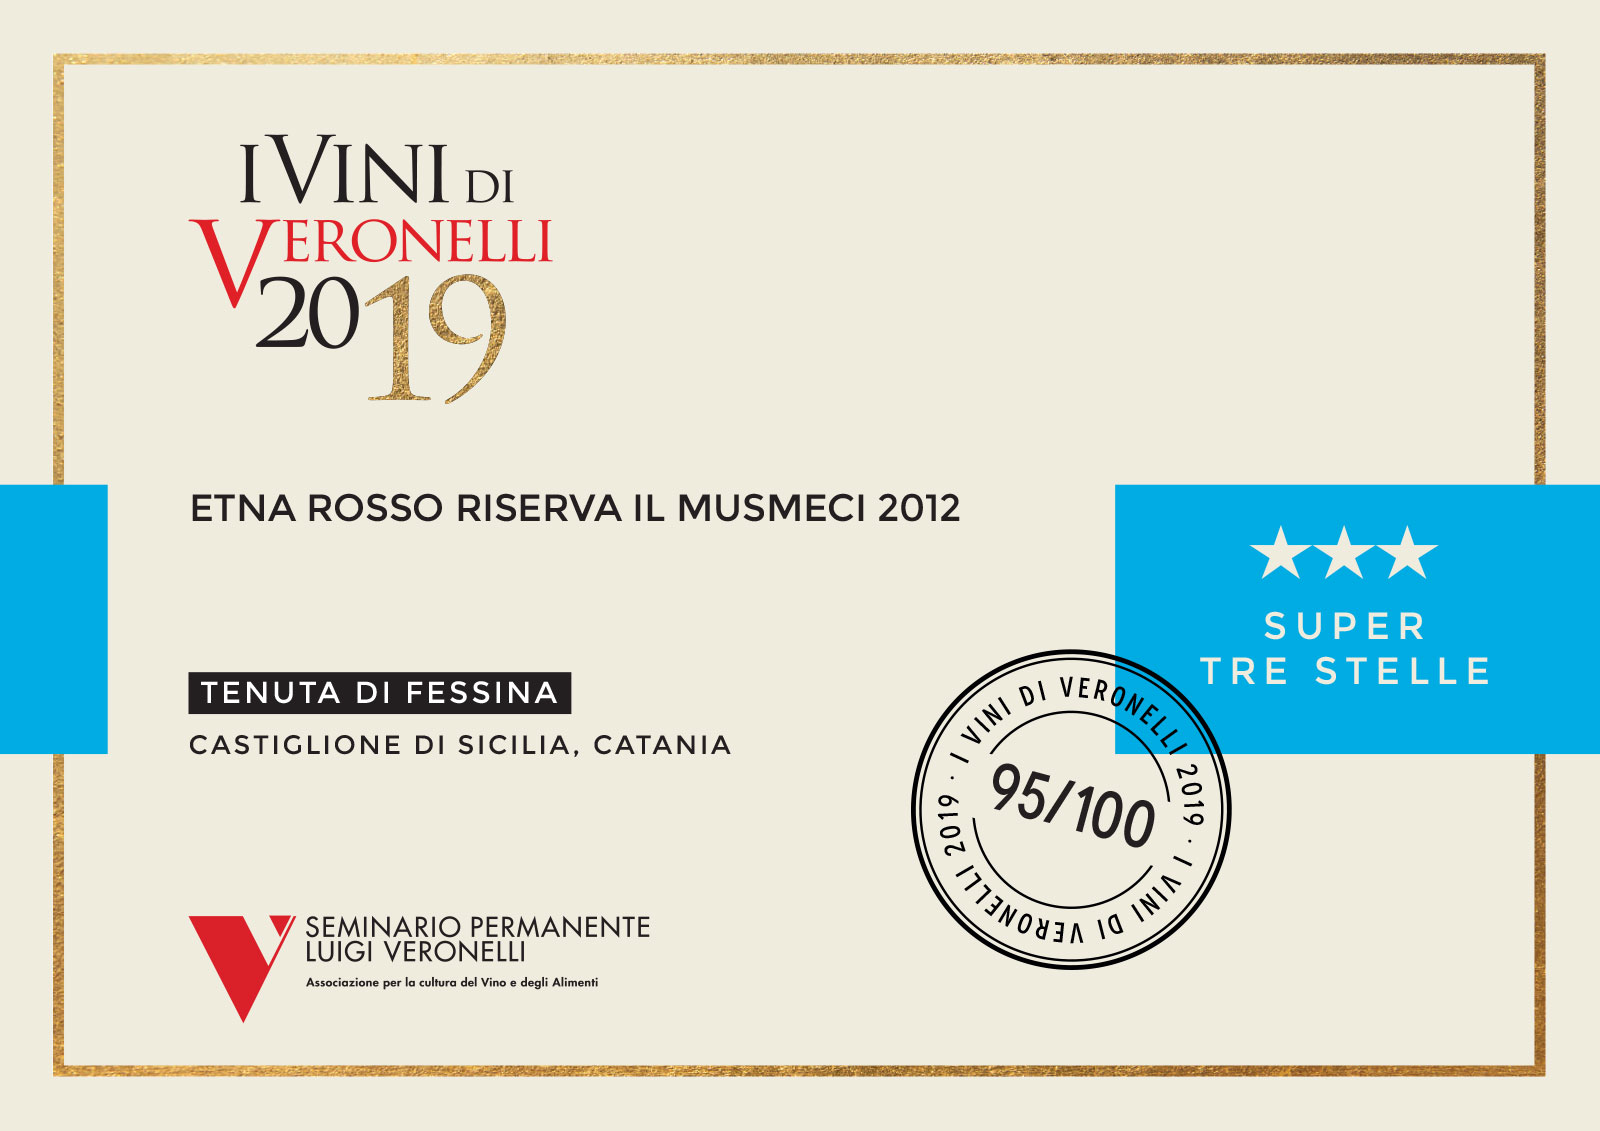 tenutadifessina-press-2018-10-ottobre-vini-di-veronelli-2019